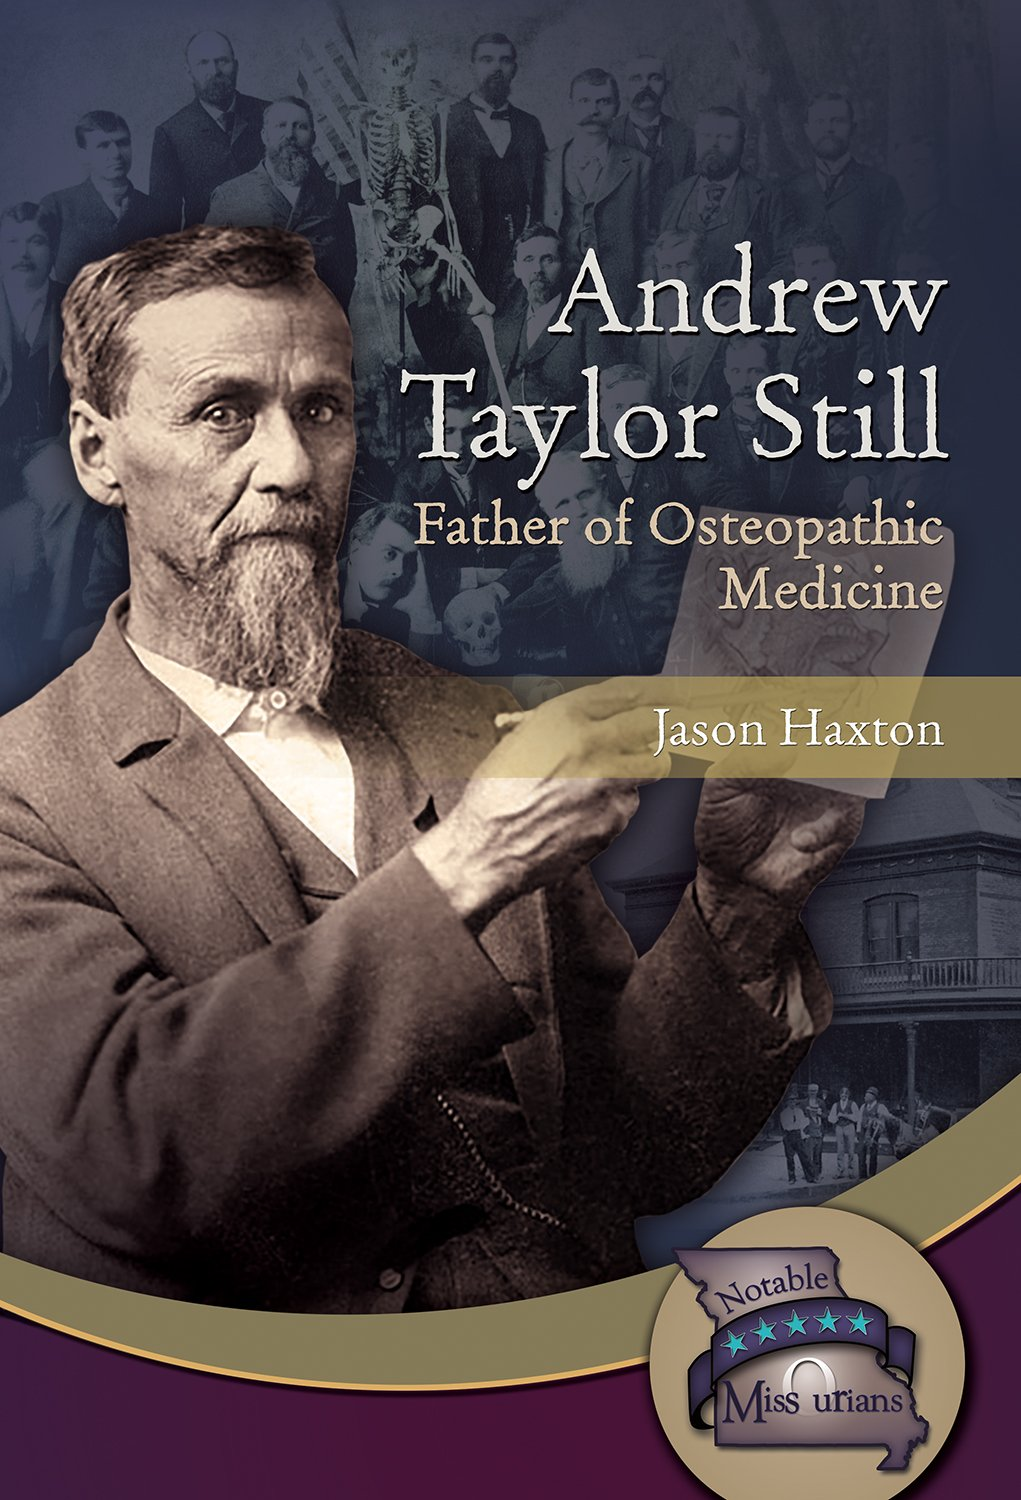 Andrew Taylor Still: Father of Osteopathic Medicine Image